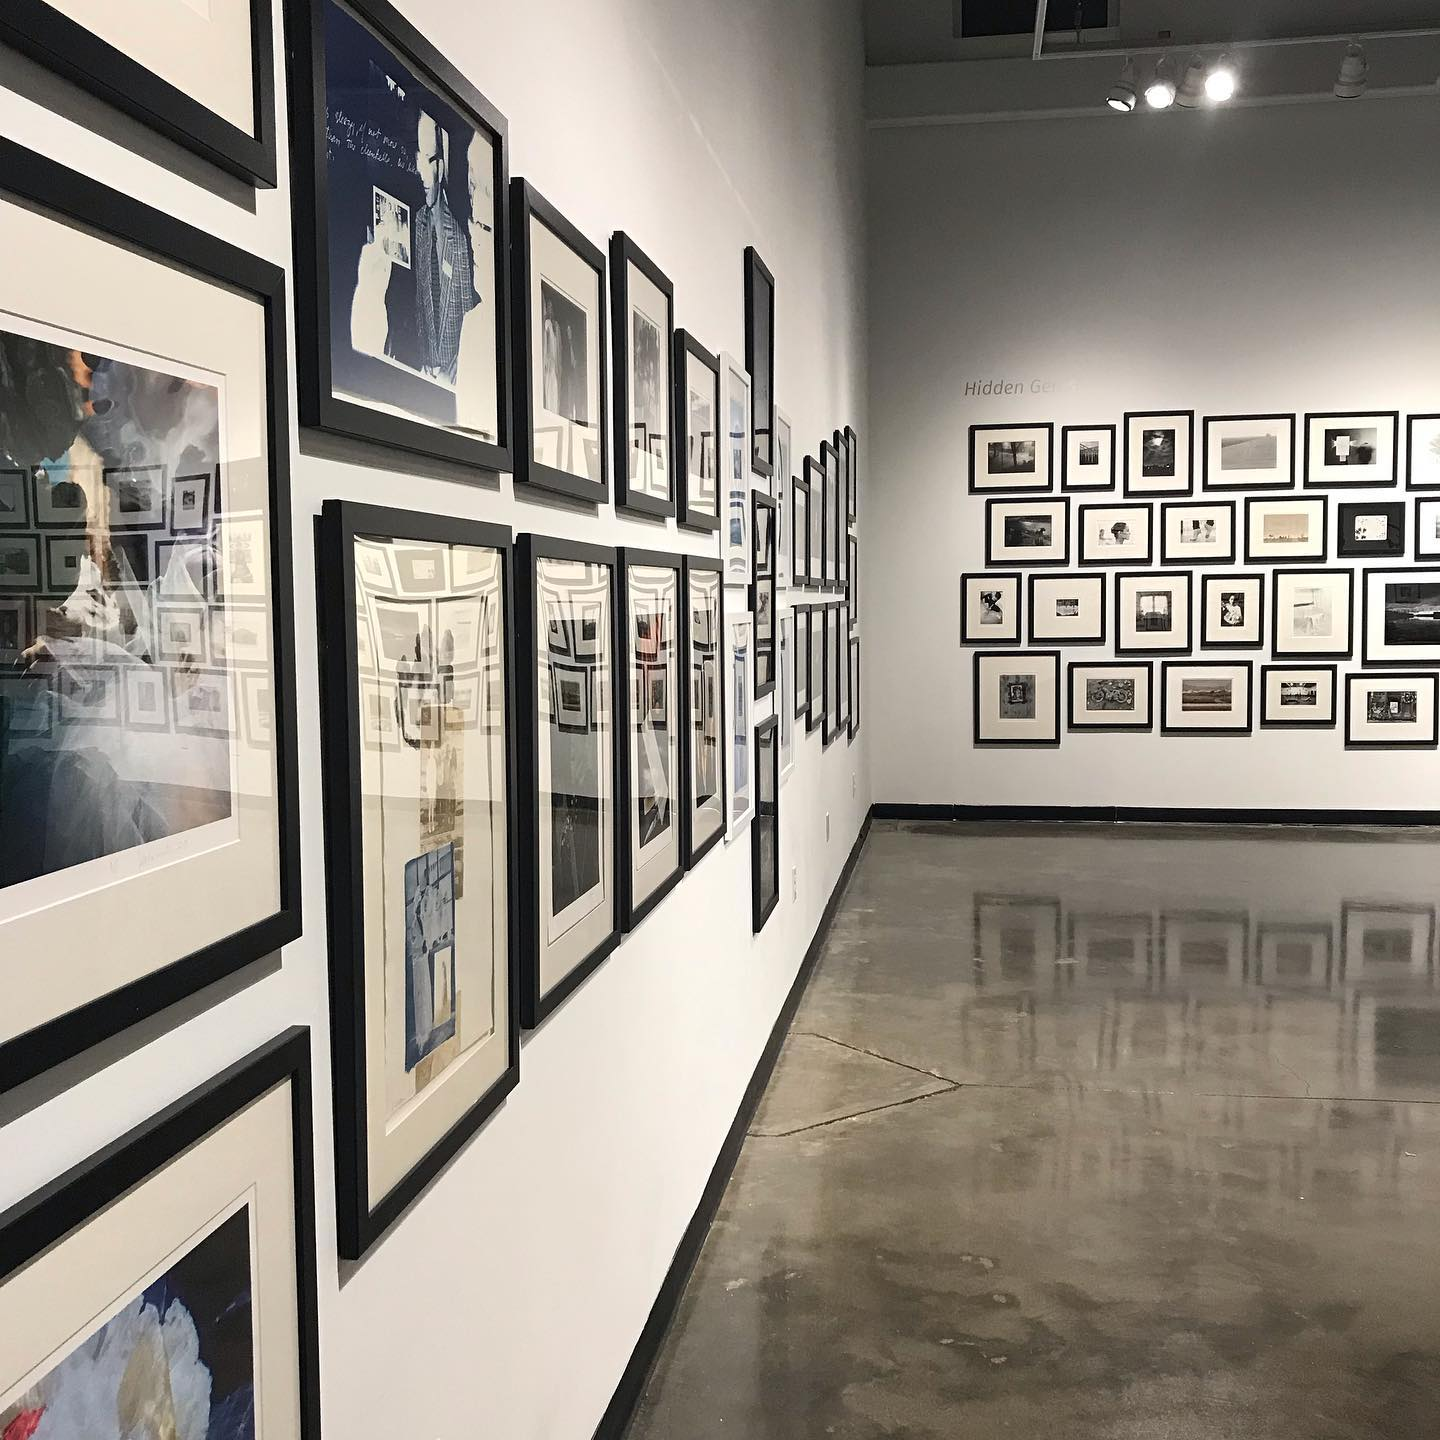 Happening today: The New Gallery to open with 'Recent Acquisitions'